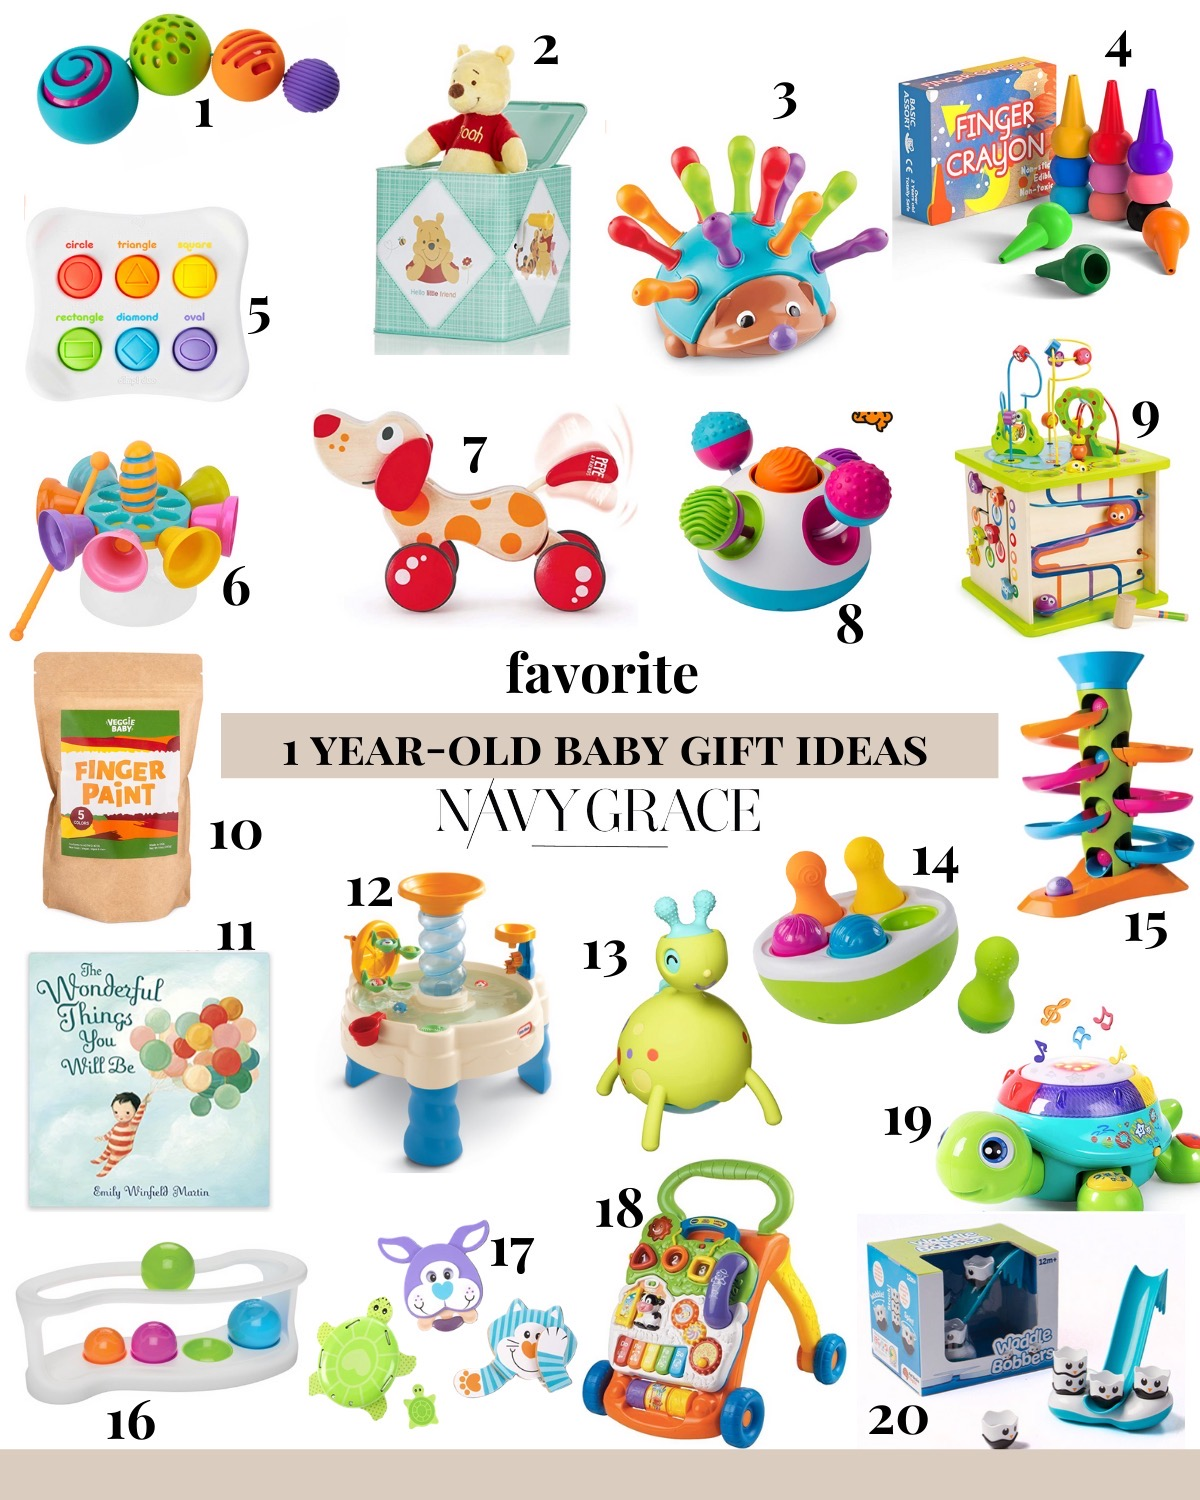 AMAZON FAVORITES: 20 GIFT IDEAS FOR ONE YEAR OLDS featured by top San Diego lifestyle blogger, Navy Grace | Gift Ideas for One Year Old by popular San Diego motherhood blog, Navy Grace: collage image of a OomeeBall, Winnie-the-Pooh jack-in-the-box, The Fine Motor HedgeHog, finger crayons, Dimpl Duo, spinning handbell set, Walk-A-Long Wooden Puppy, Fat Brain Toys Klickity Toy,  Wooden Creatures Activity Cube, finger paint, The Wonderful Things You Will Be Book, Little Tikes Spiralin' water table, Rollobie, Spinny Pins wobble toy,  Roll Again Tower, Roll Again sorter, Favorite Pets Grasping Toys, Sit to Stand Learning Walker, iPlay, iLearn Turtle, and Wobble Bobble bath toys.